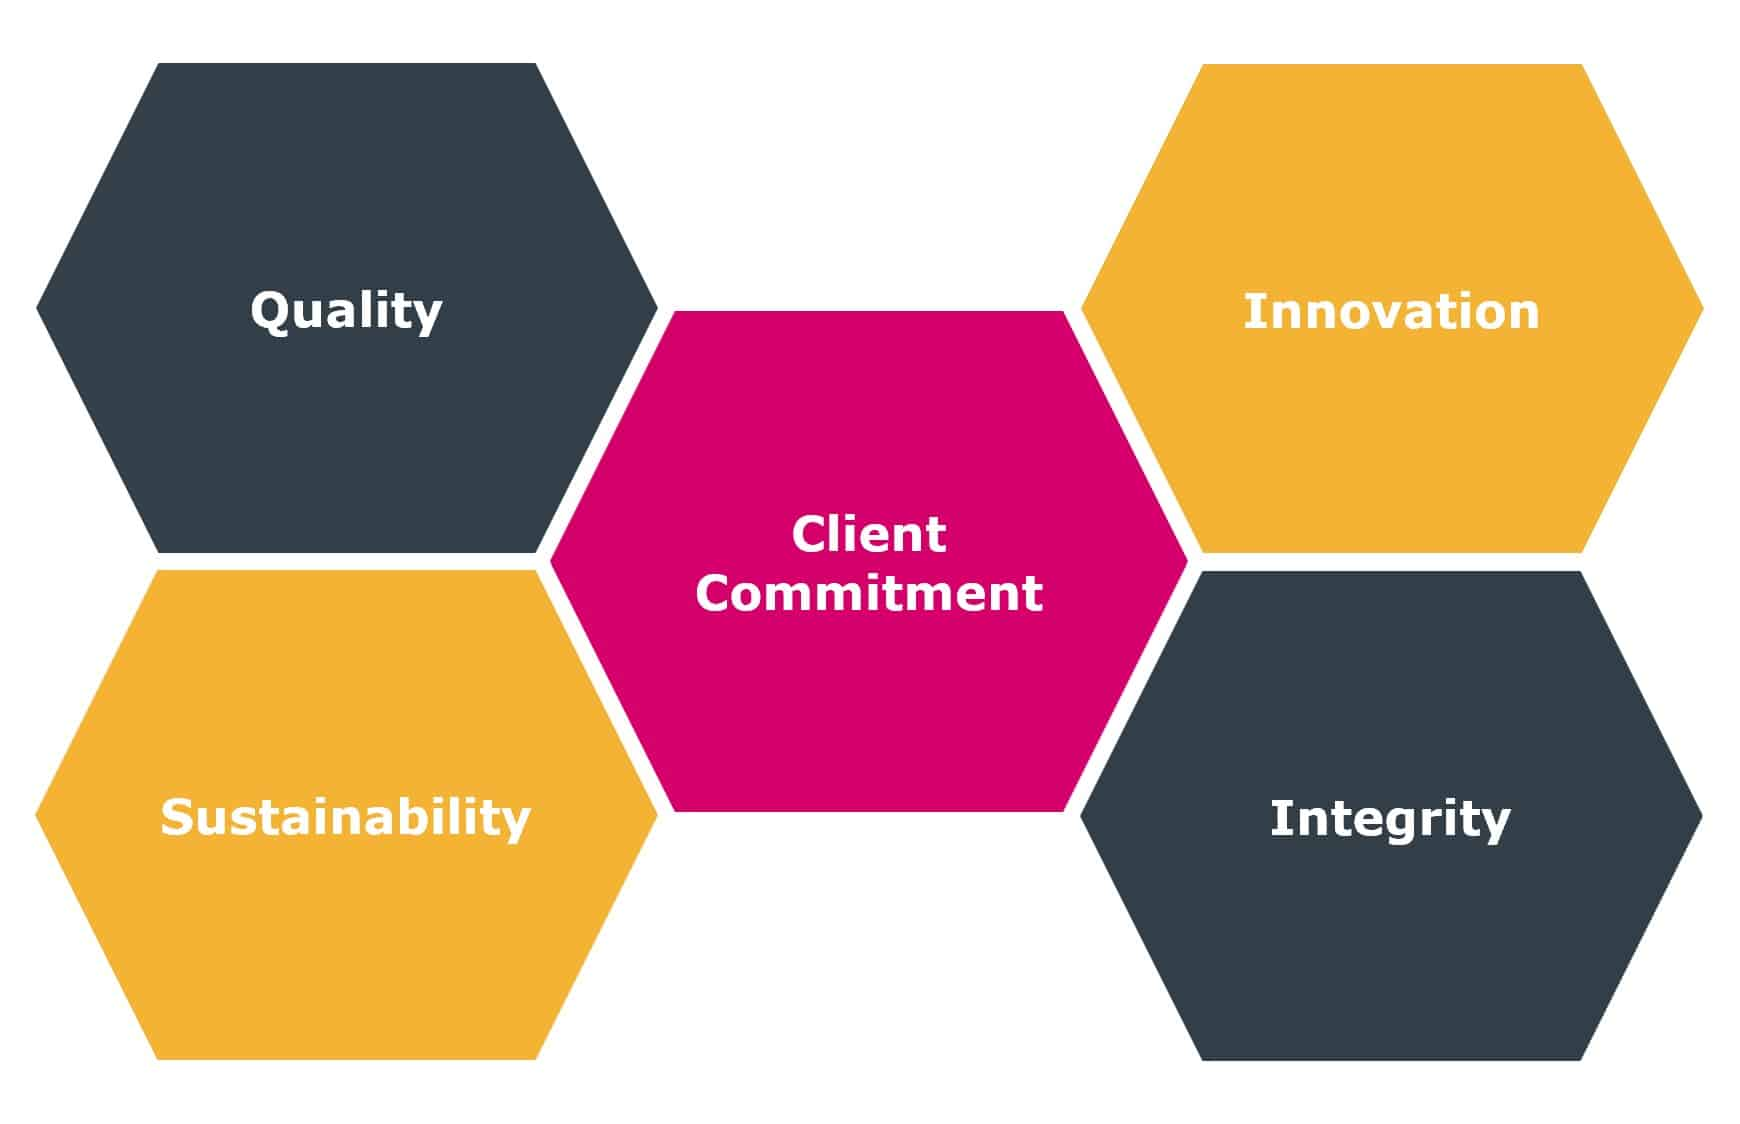 Hereworks Core Values, quality, accountability, client commitment, innovation, integrity